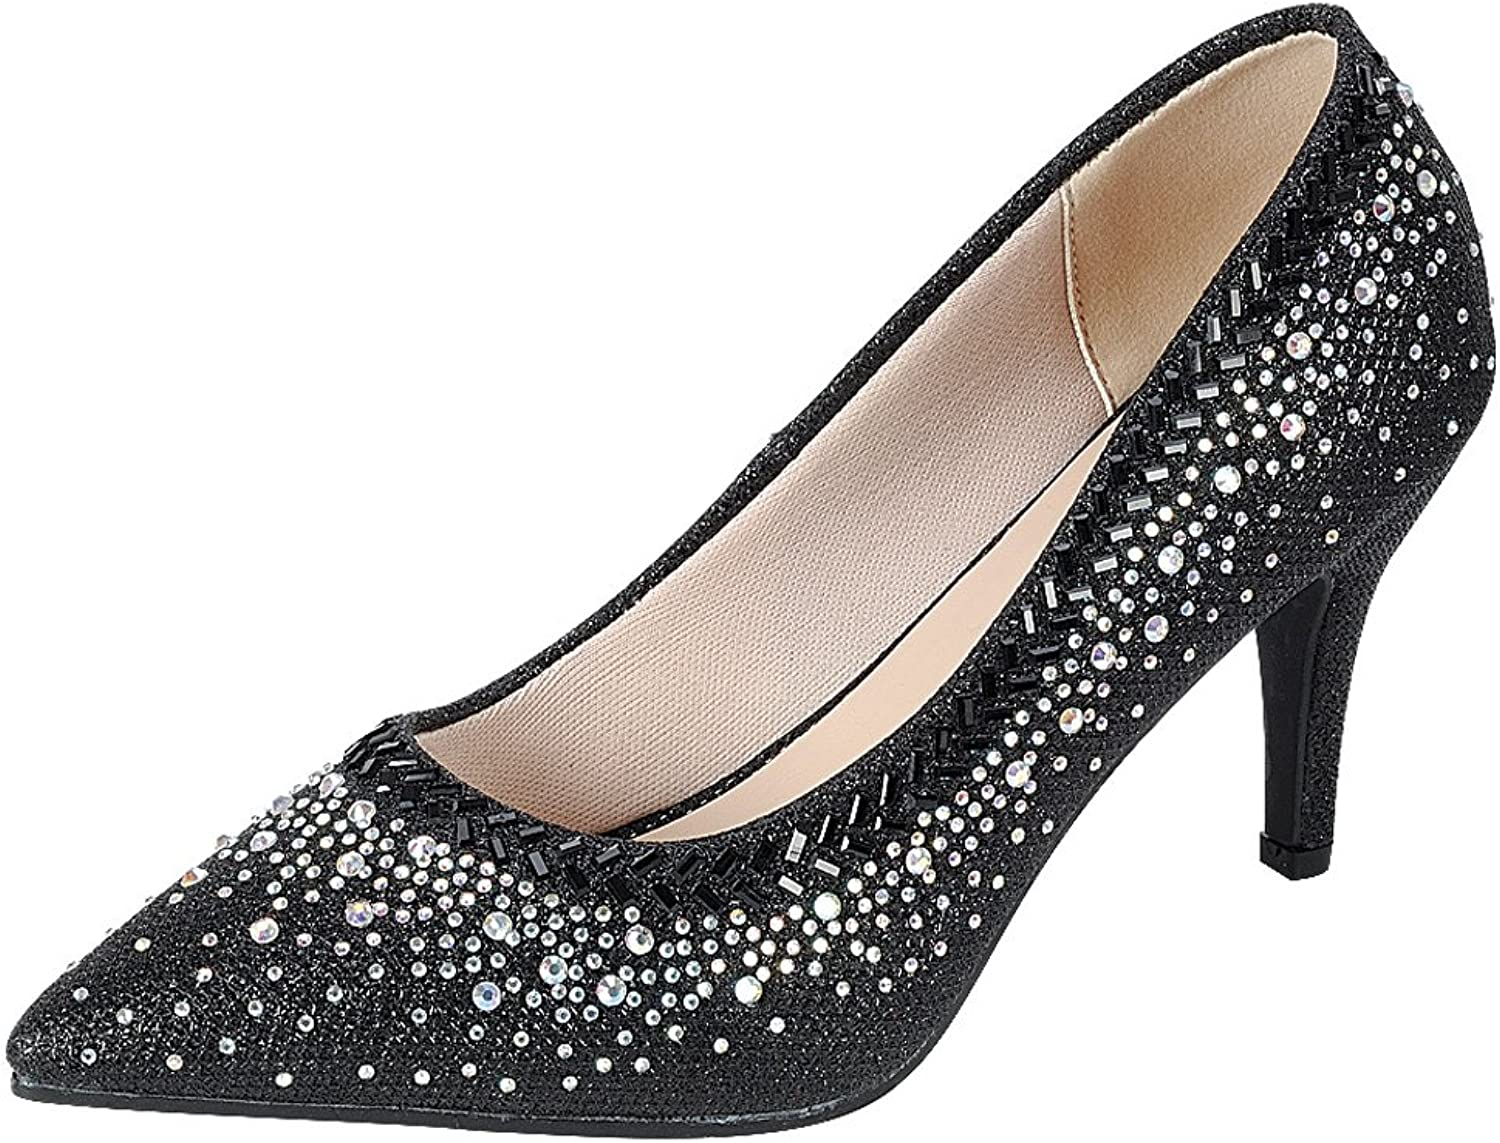 Cambridge Select Women's Closed Pointed Toe Glitter Crystal Rhinestone Stiletto High Heel Pump